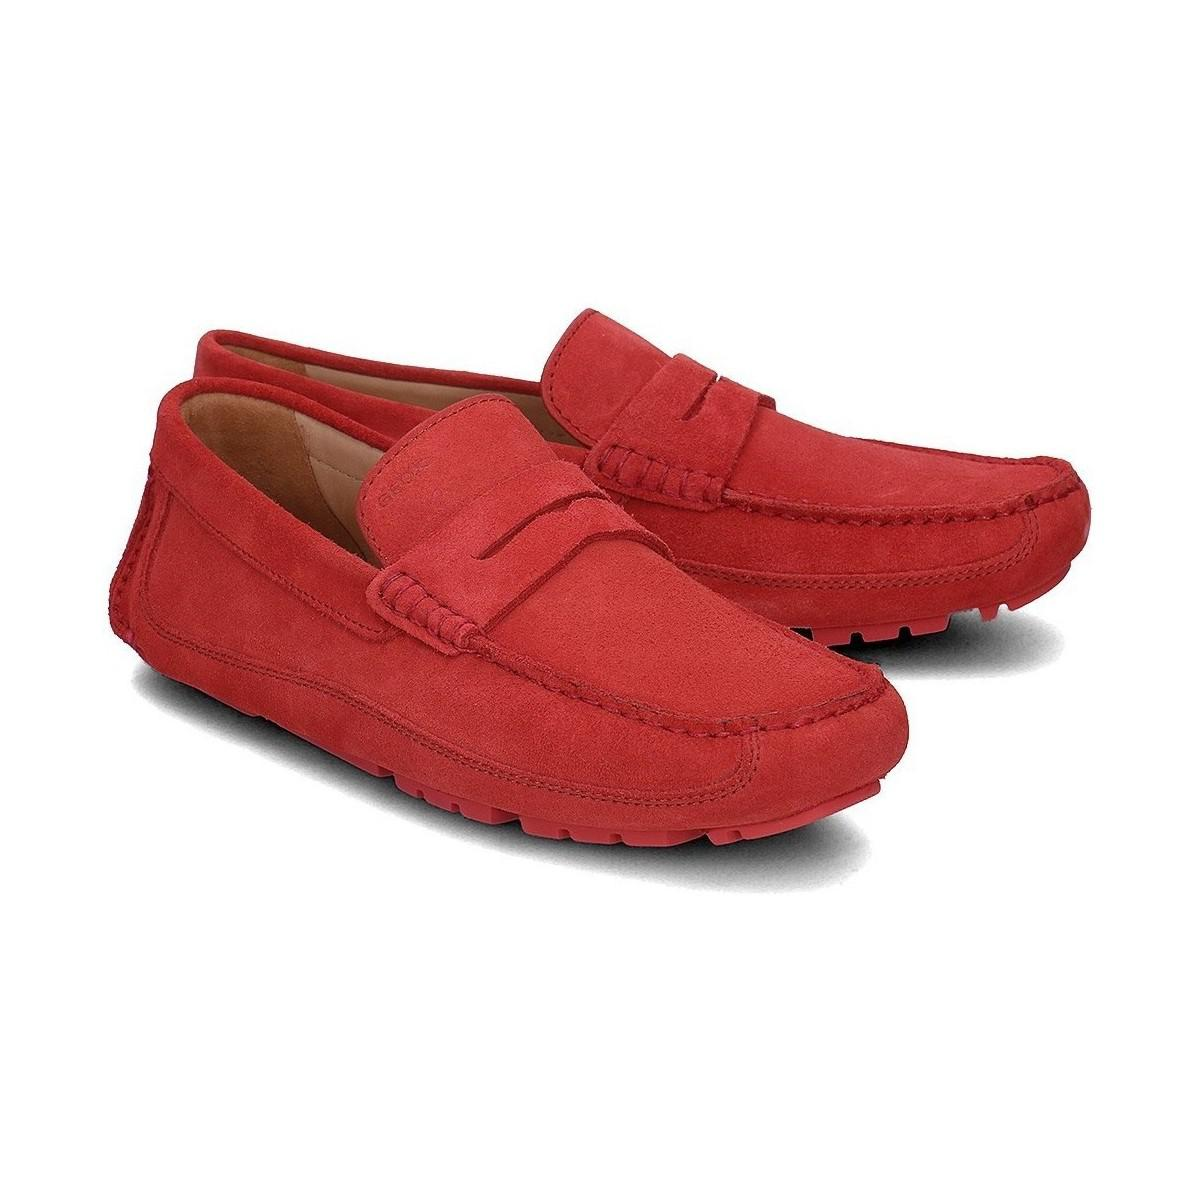 9ee33d5b9b3 Geox Melbourne Men s Loafers   Casual Shoes In Red in Red for Men - Lyst